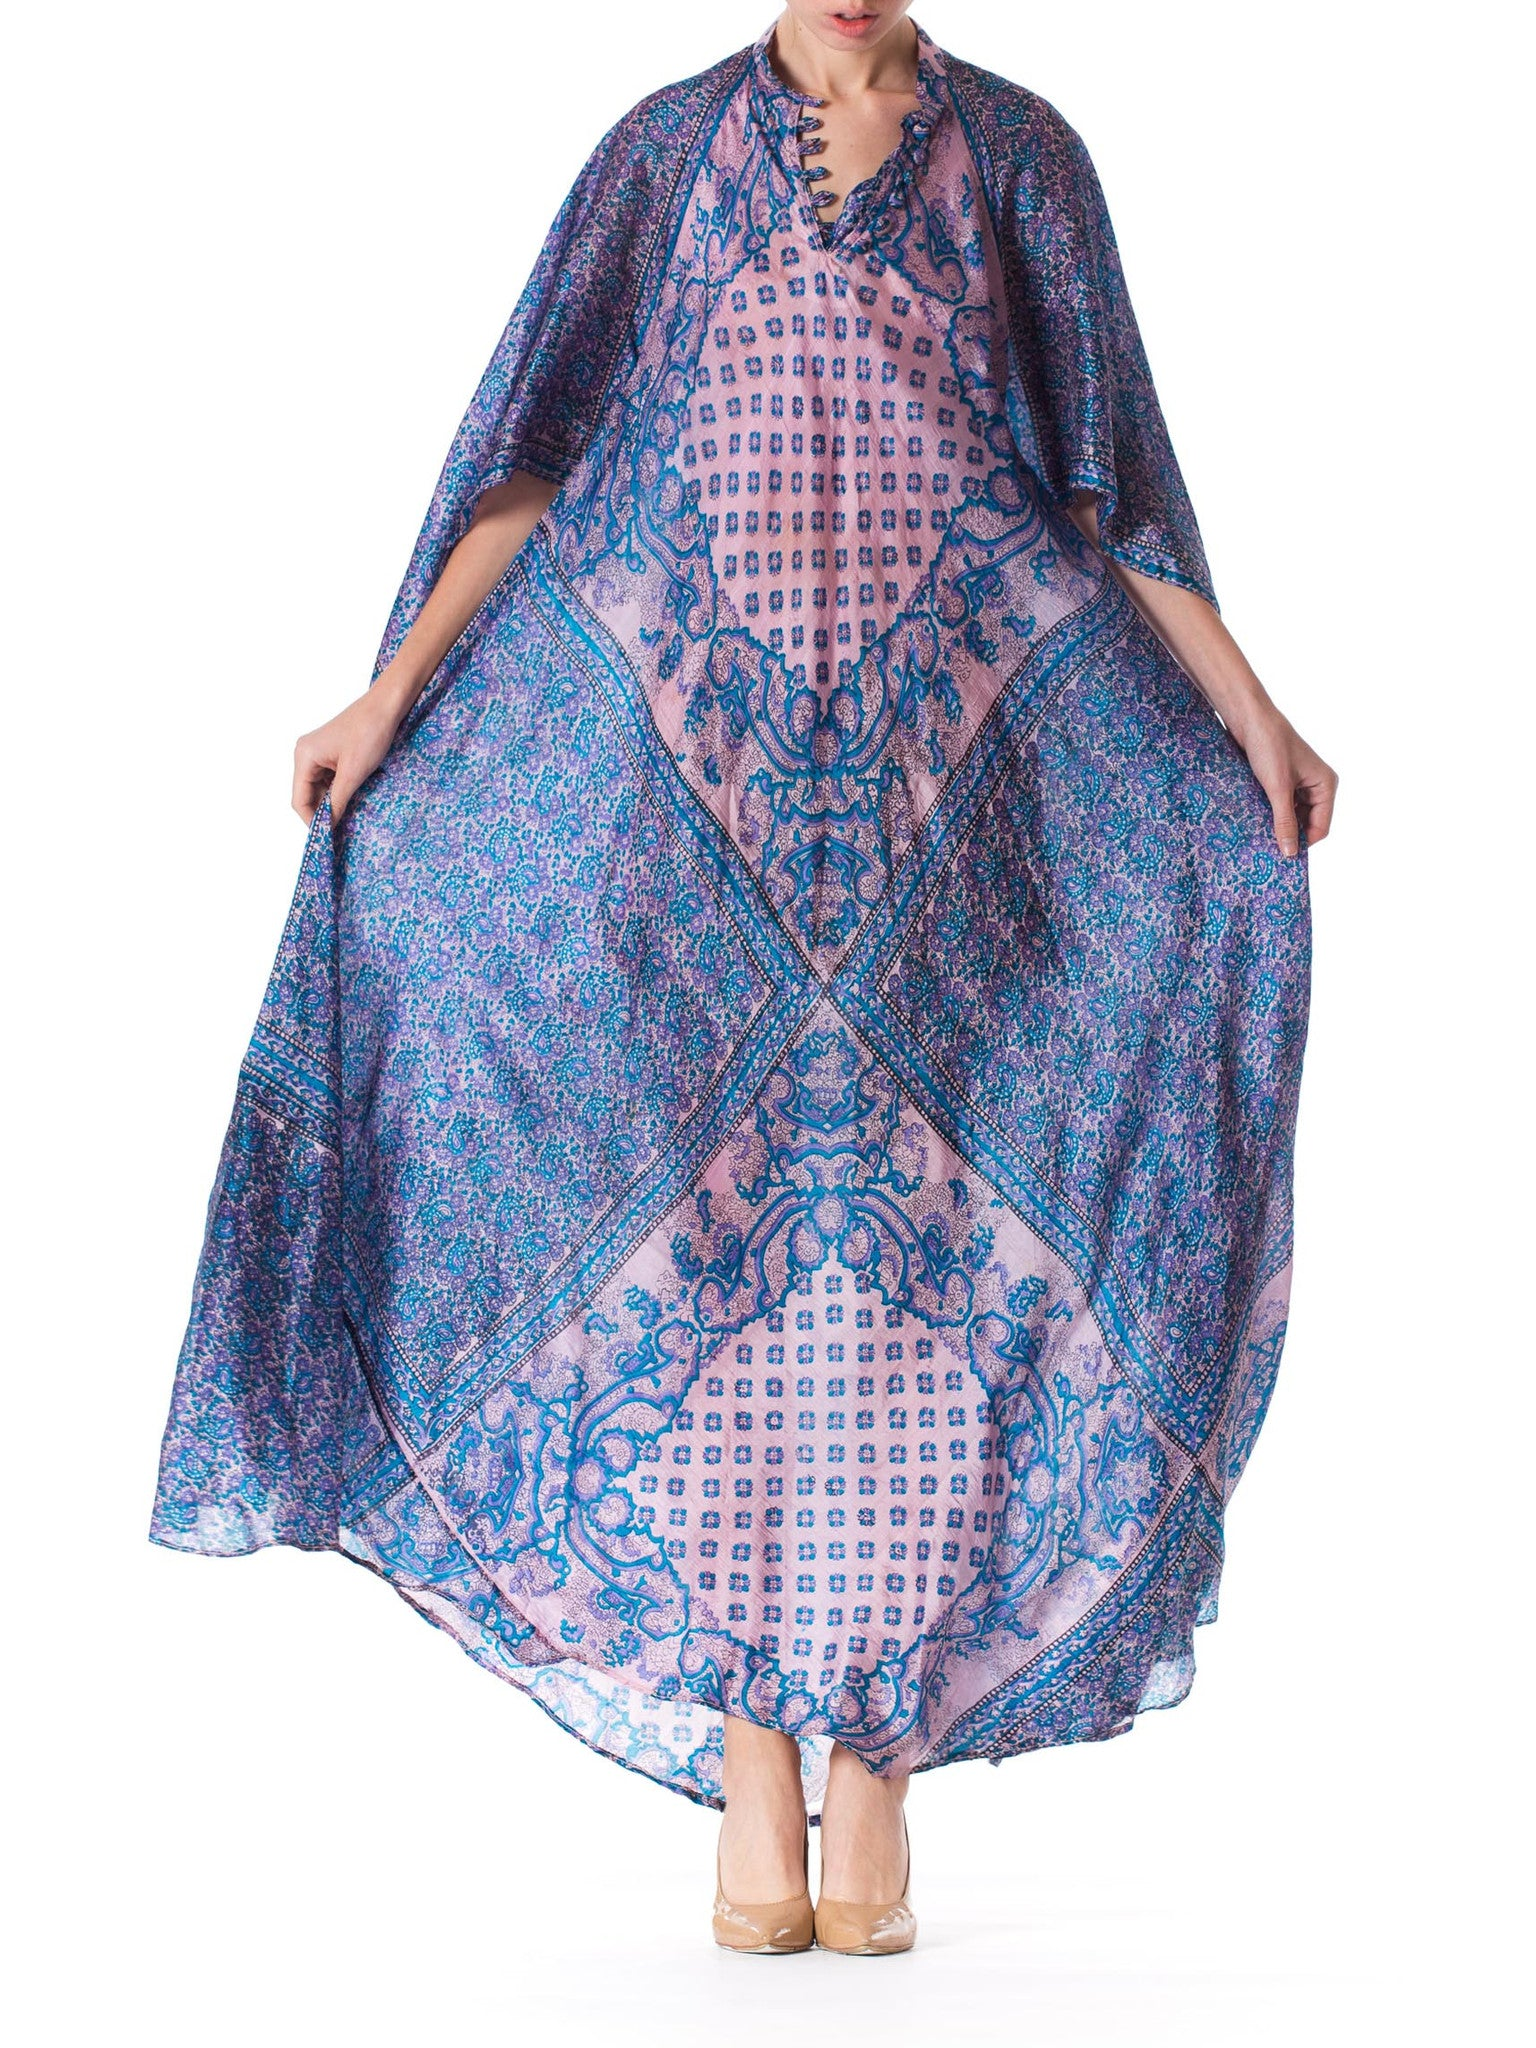 1970S Silk Hand Printed Boho Dress